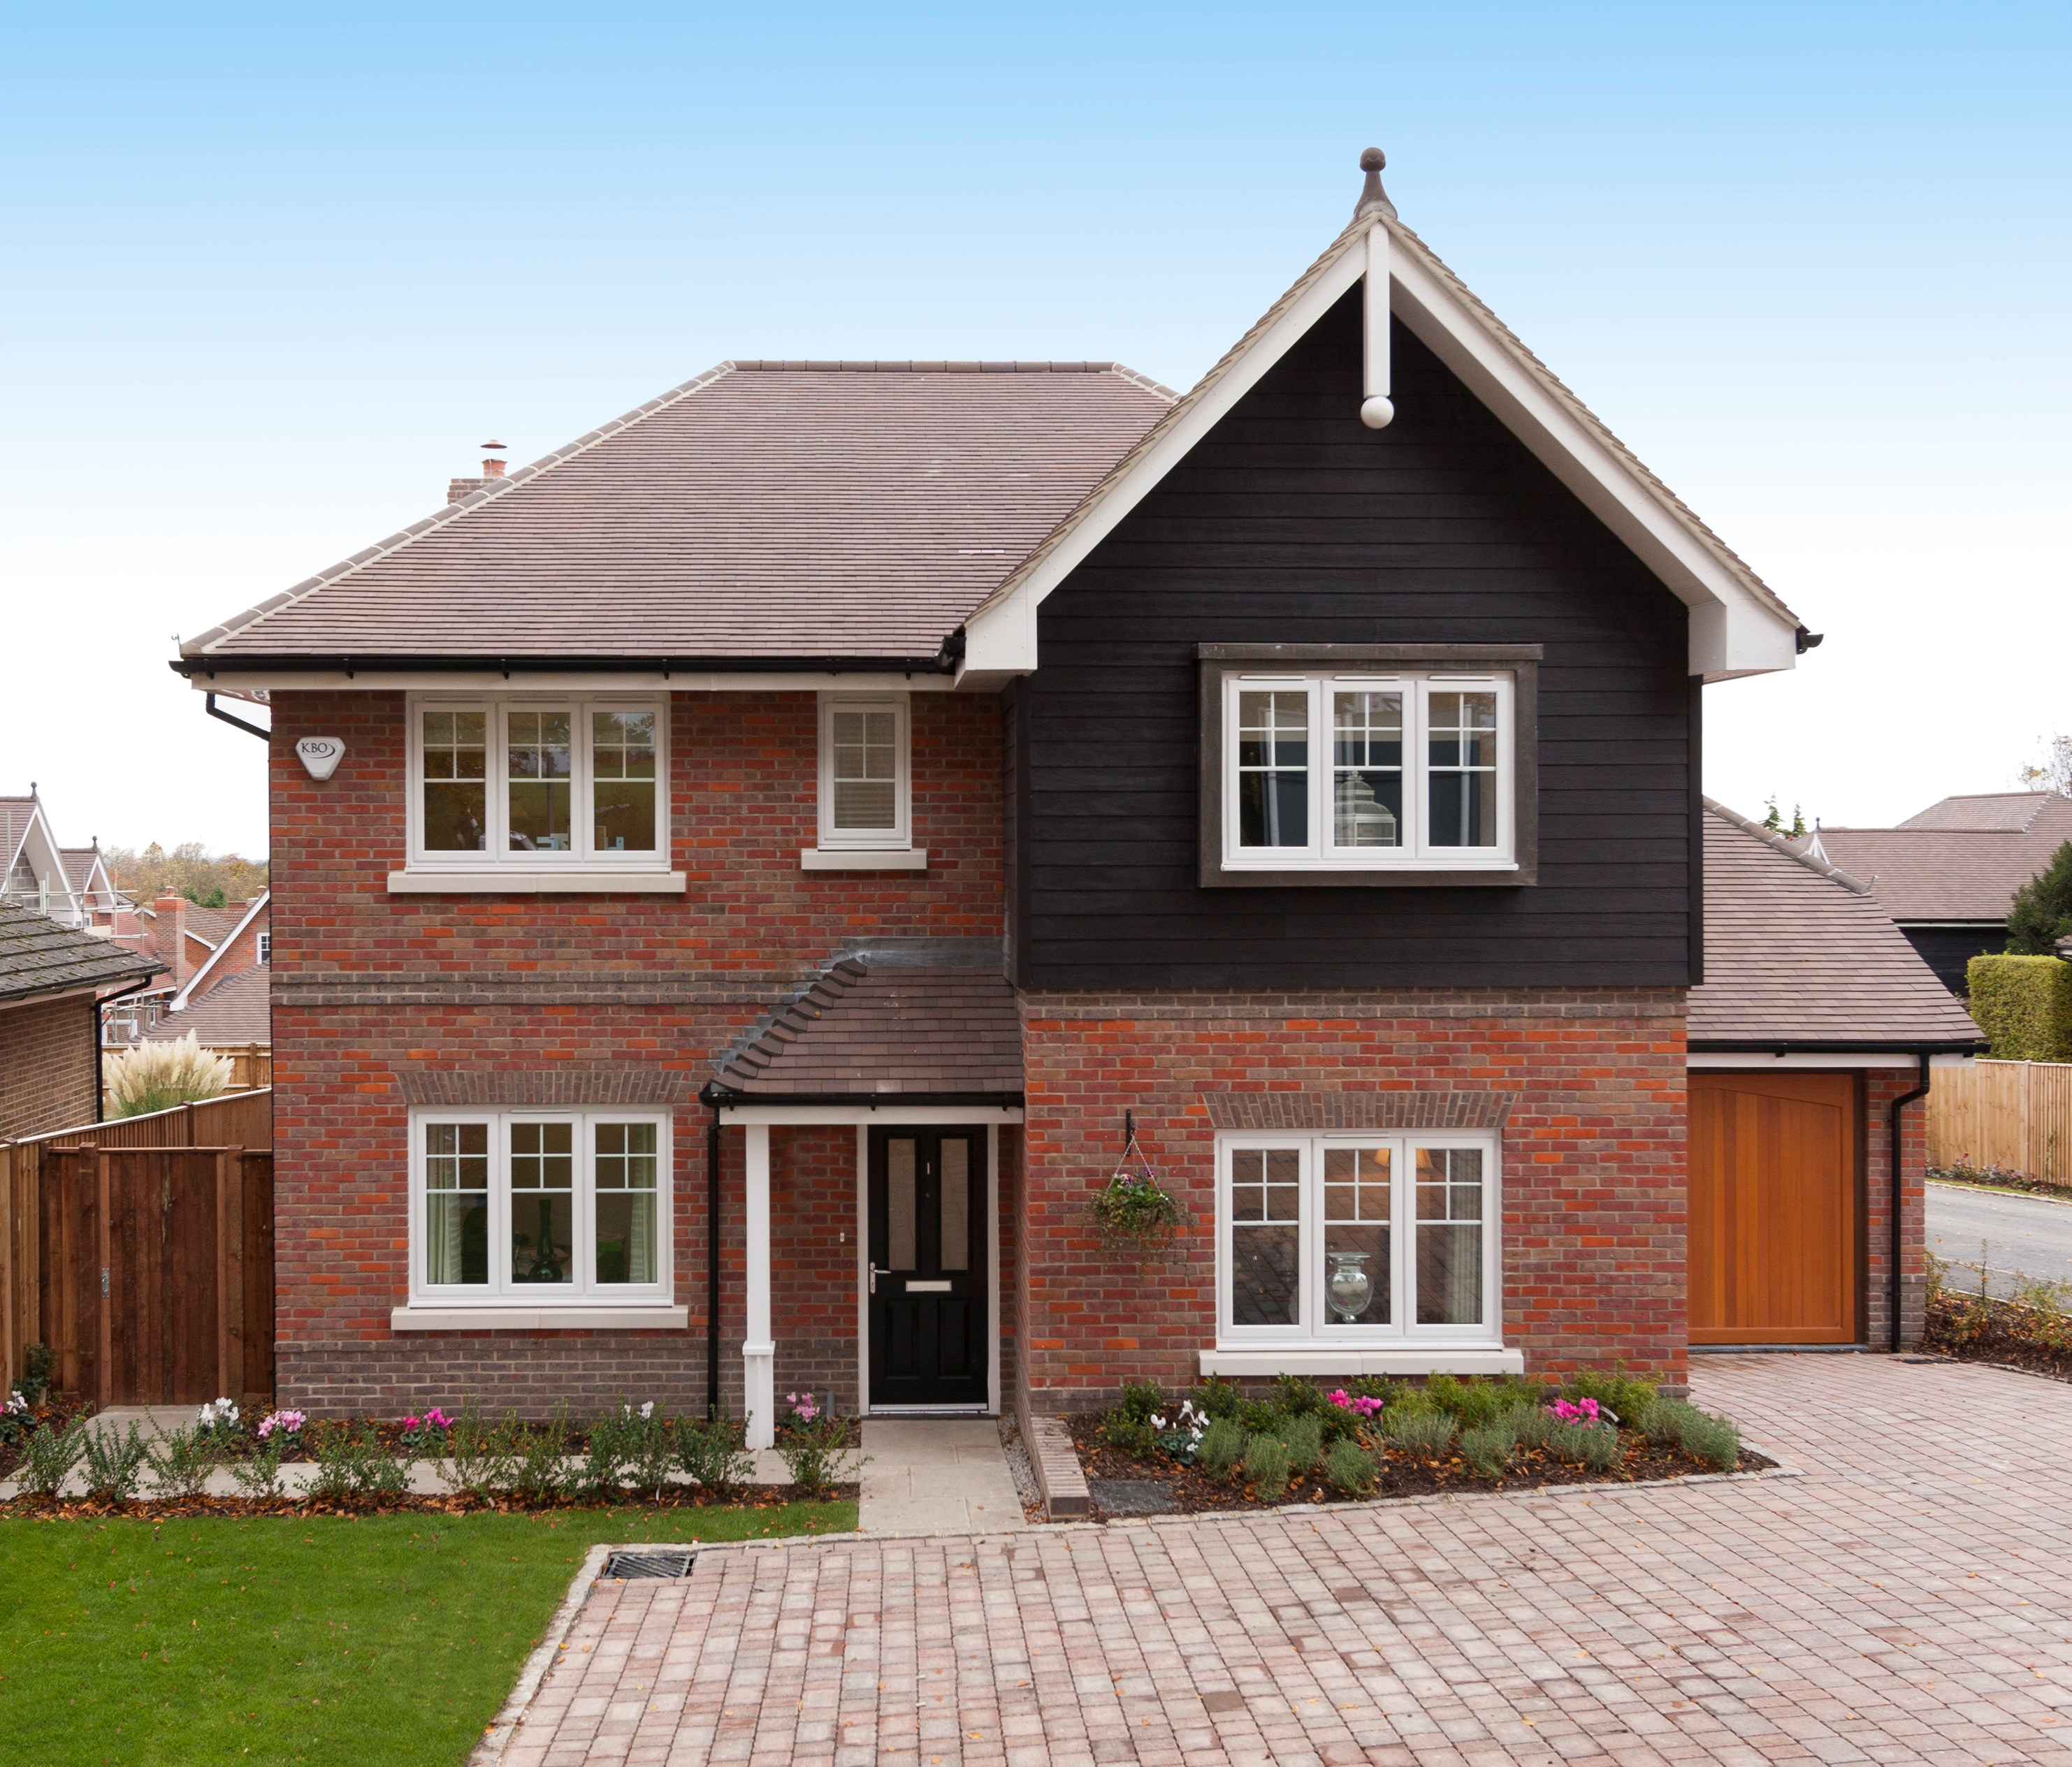 New Family Homes In Bookham